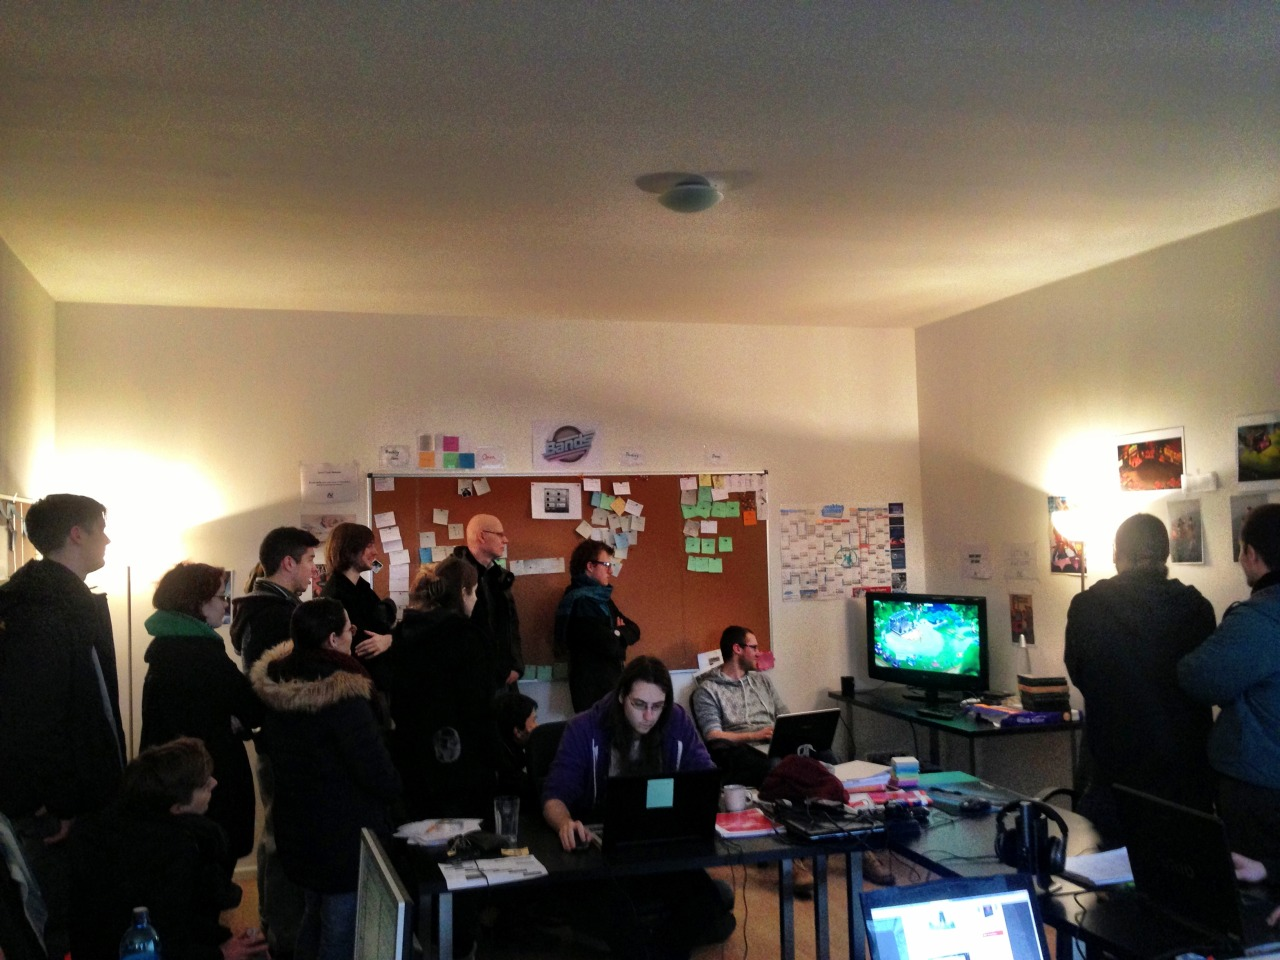 Today we got visited by game design students from the Zürcher Hochschule der Künste. Fun times! Great people! We are looking fwd seeing them again soon!